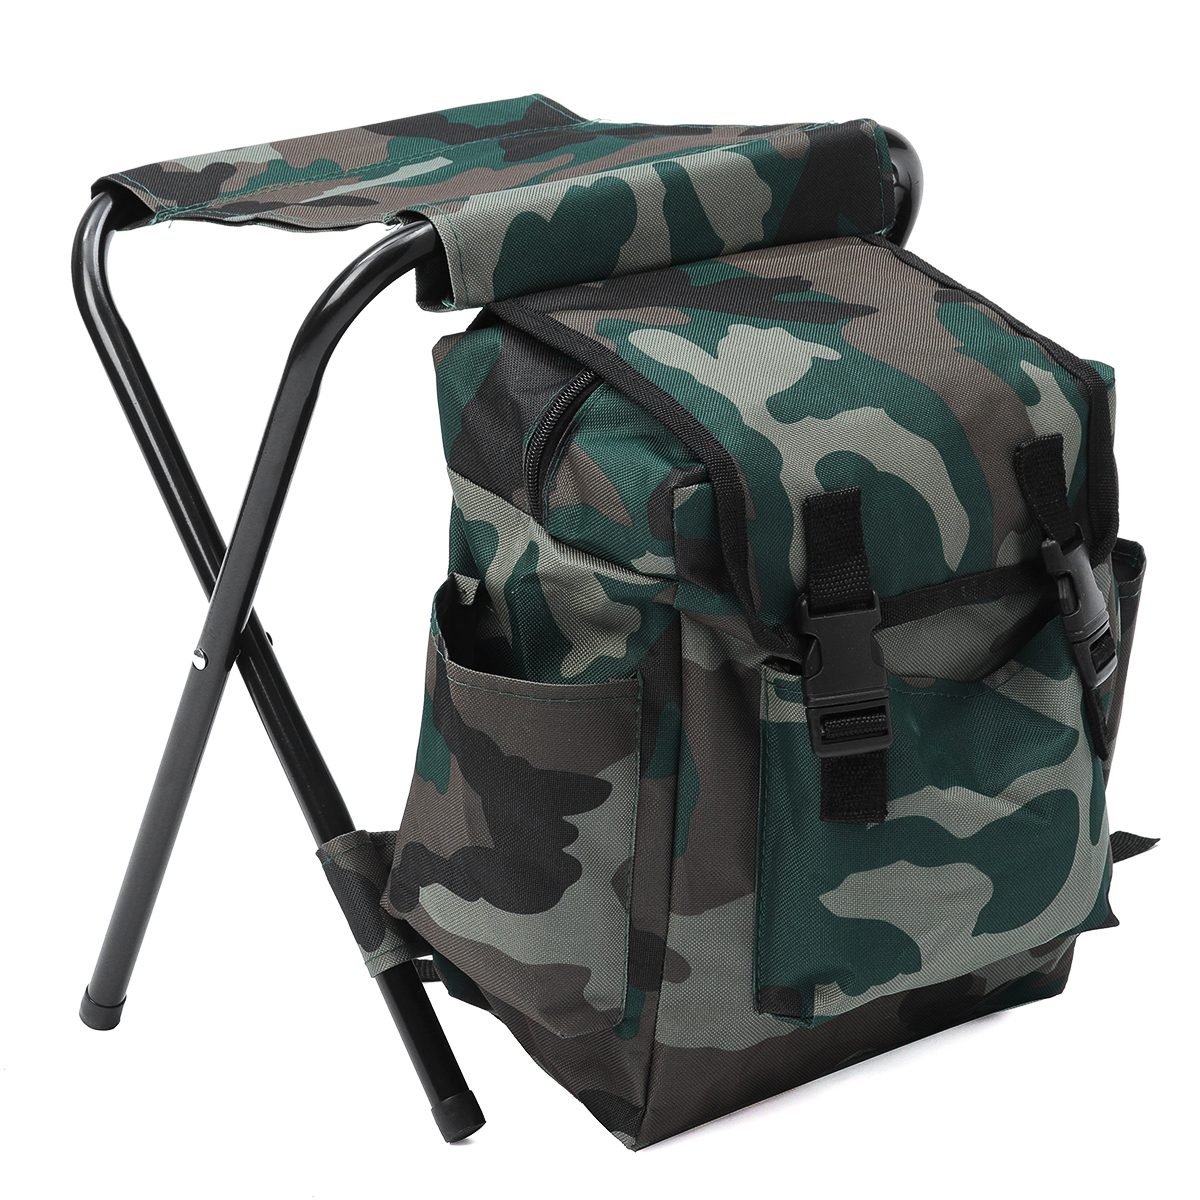 fishing chair rucksack costco high foldable stool camping backpack oudoor